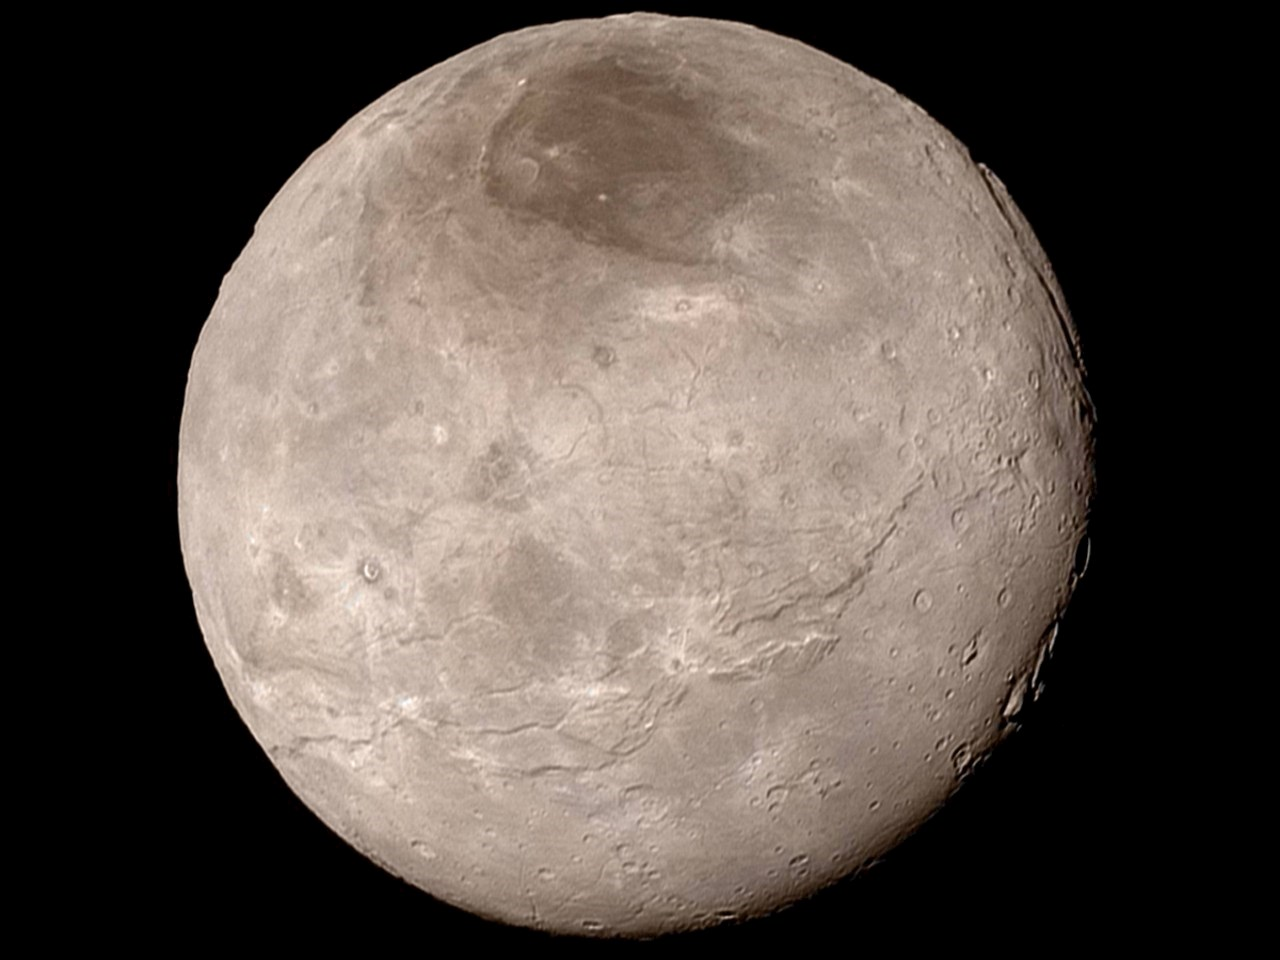 Charon, taken by New Horizons late on 13 July 2015